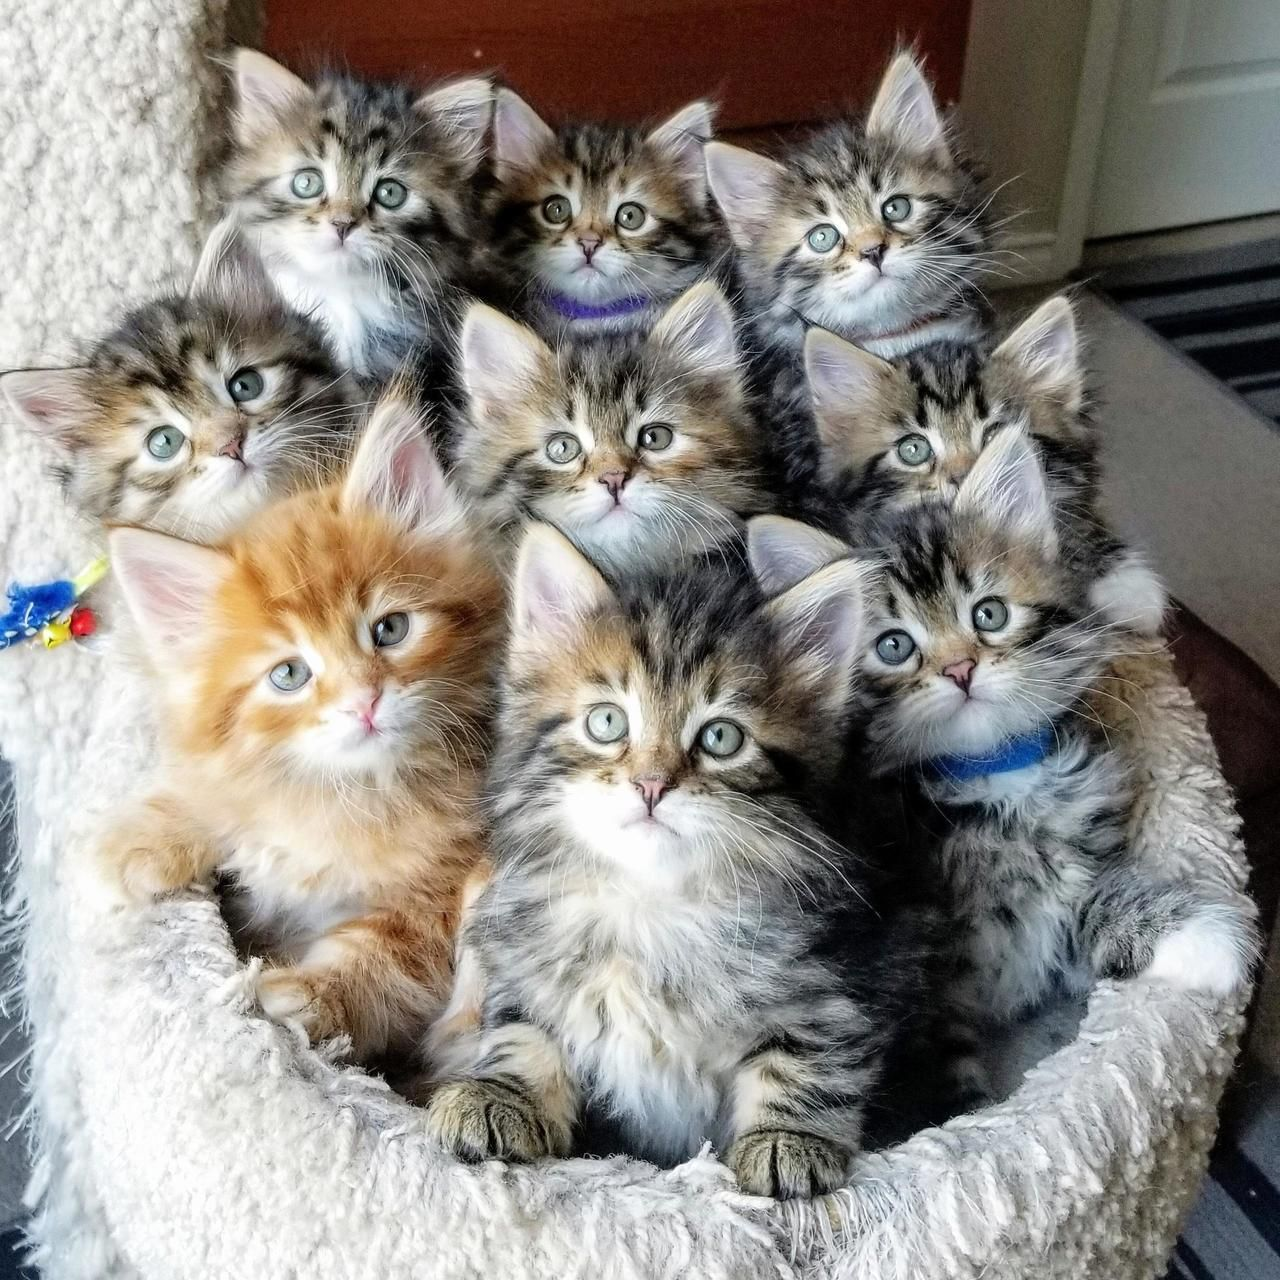 Skippy Teddy236 Awwcutepets 9 Babies Rare Moment In 2020 Kittens Cutest Cute Baby Cats Baby Cats